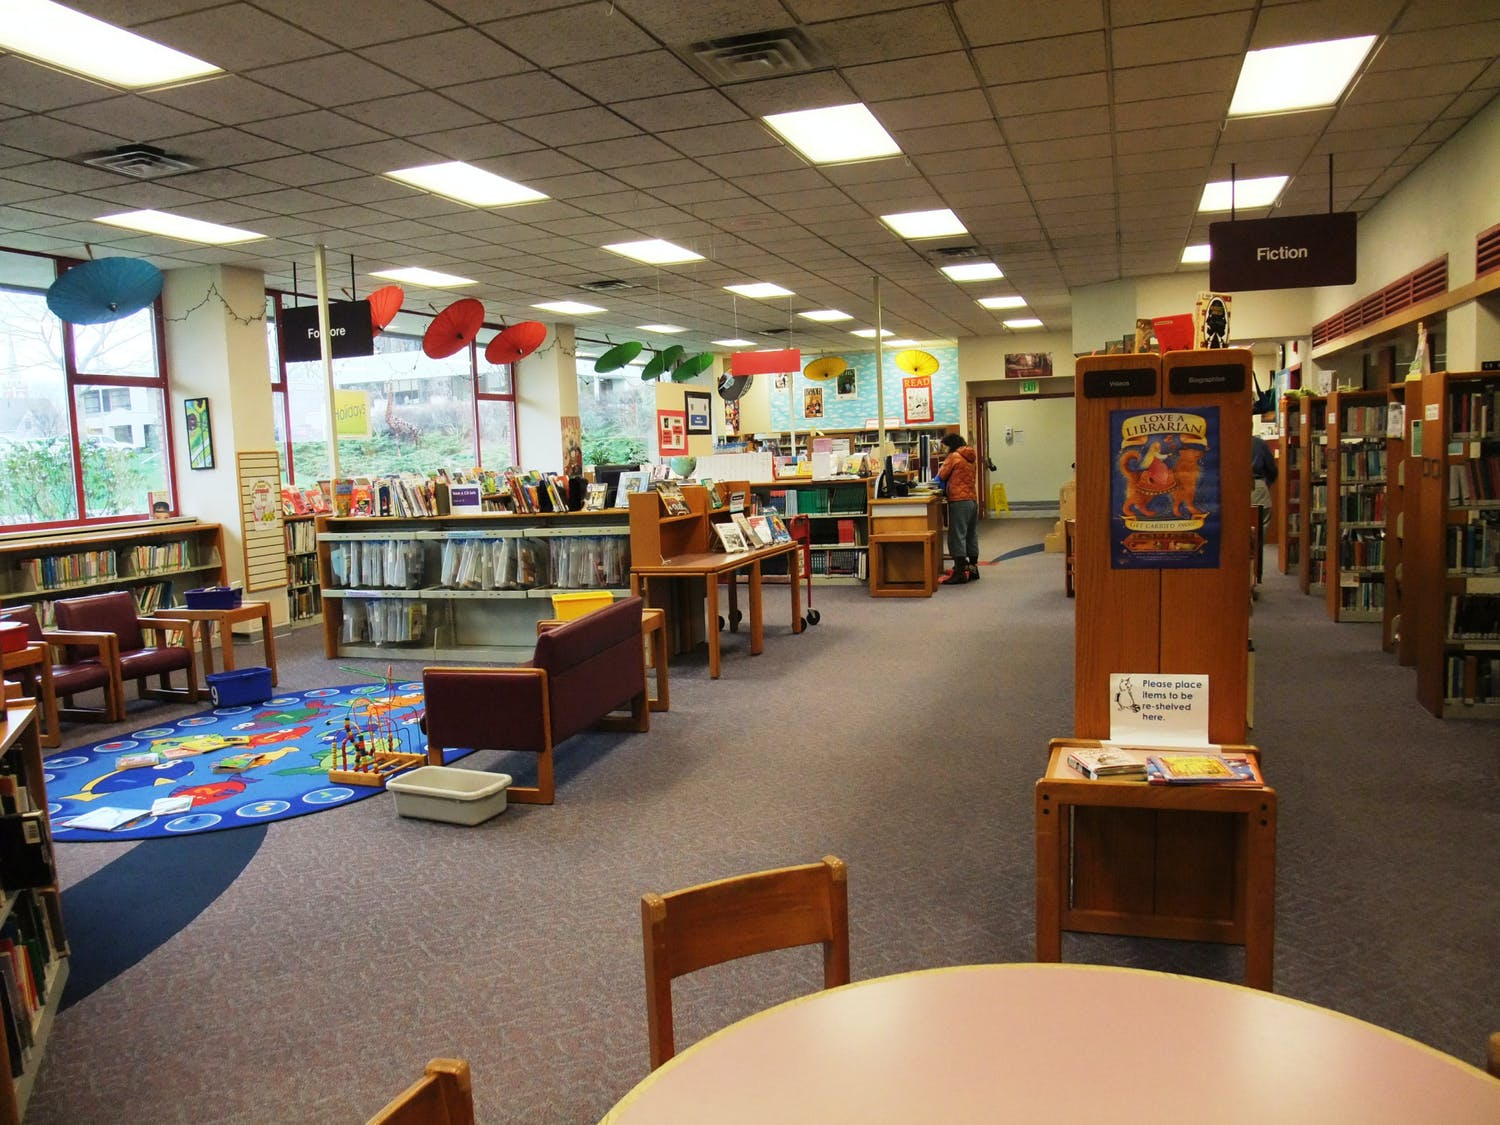 The children's section of the Bellingham Public Library in Bellingham, Wash. The library is challenging children of all ages to get excited about reading over the summer with its annual summer reading program beginning June 1. // Photo courtesy of Ahniwa Ferrari via Flickr